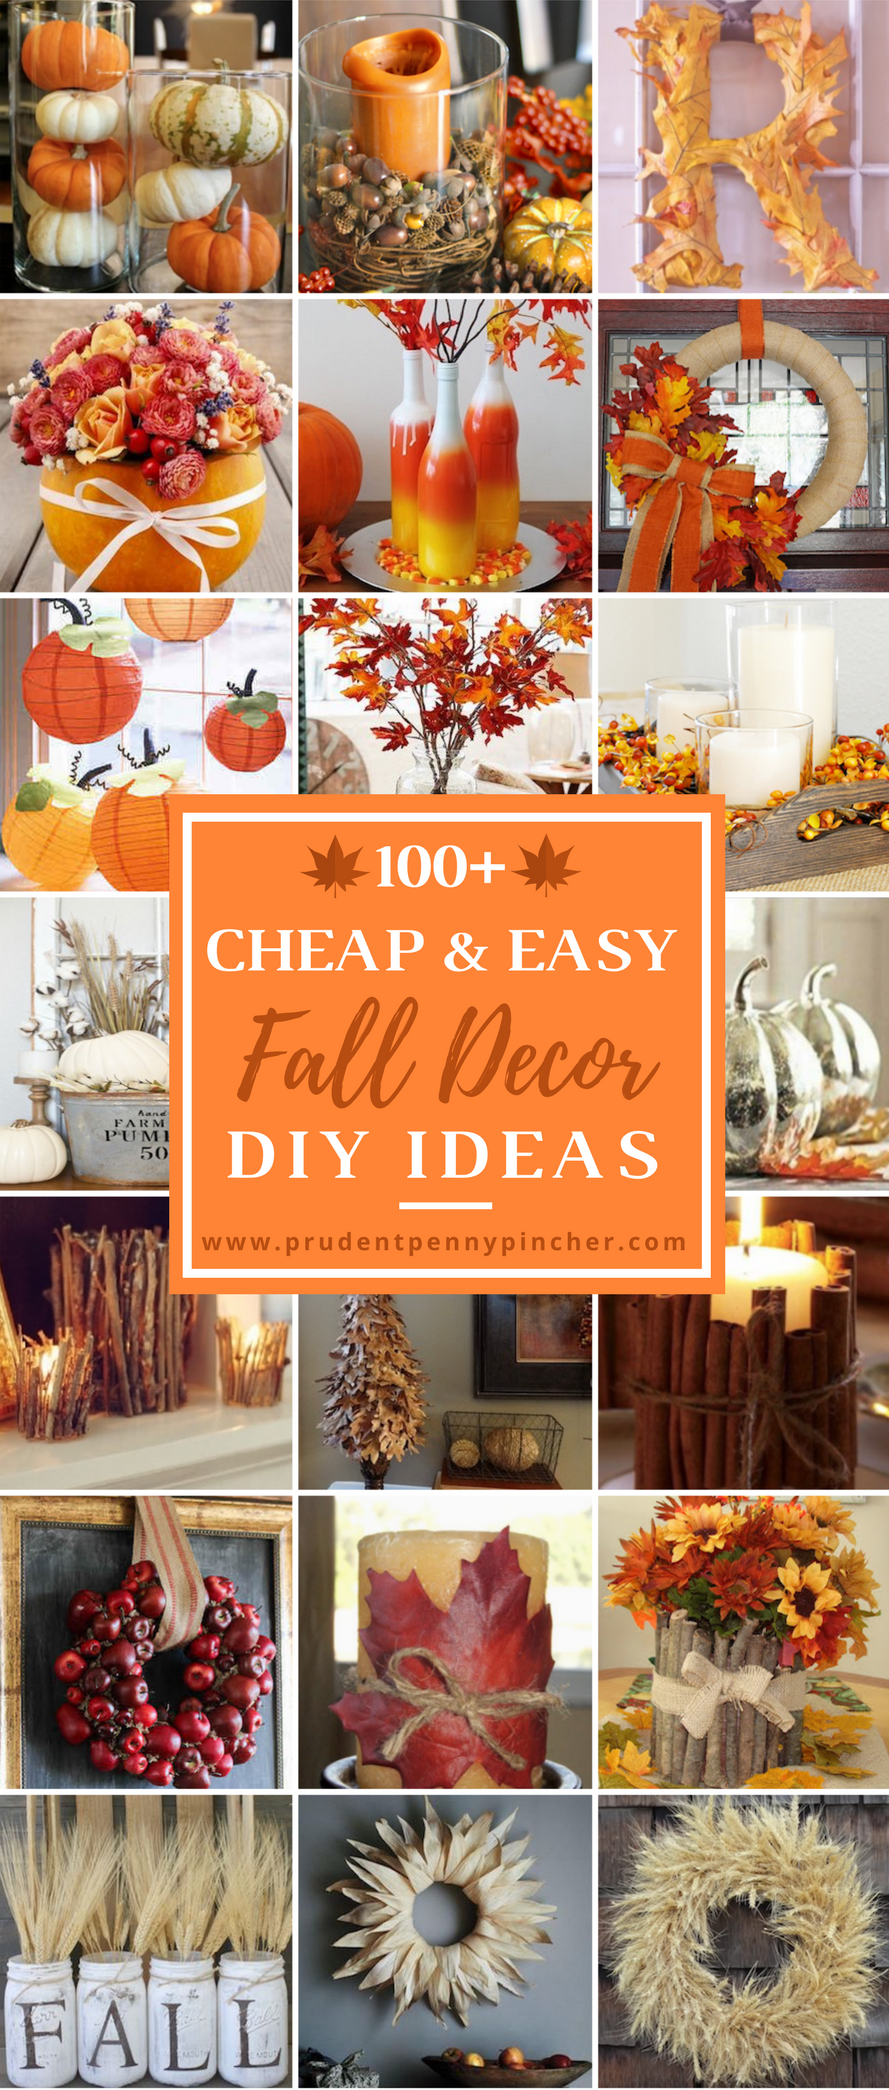 fall is my favorite time of year pumpkin everything cool weather autumn foliage and fun fall activities so obviously i love decorating for fall